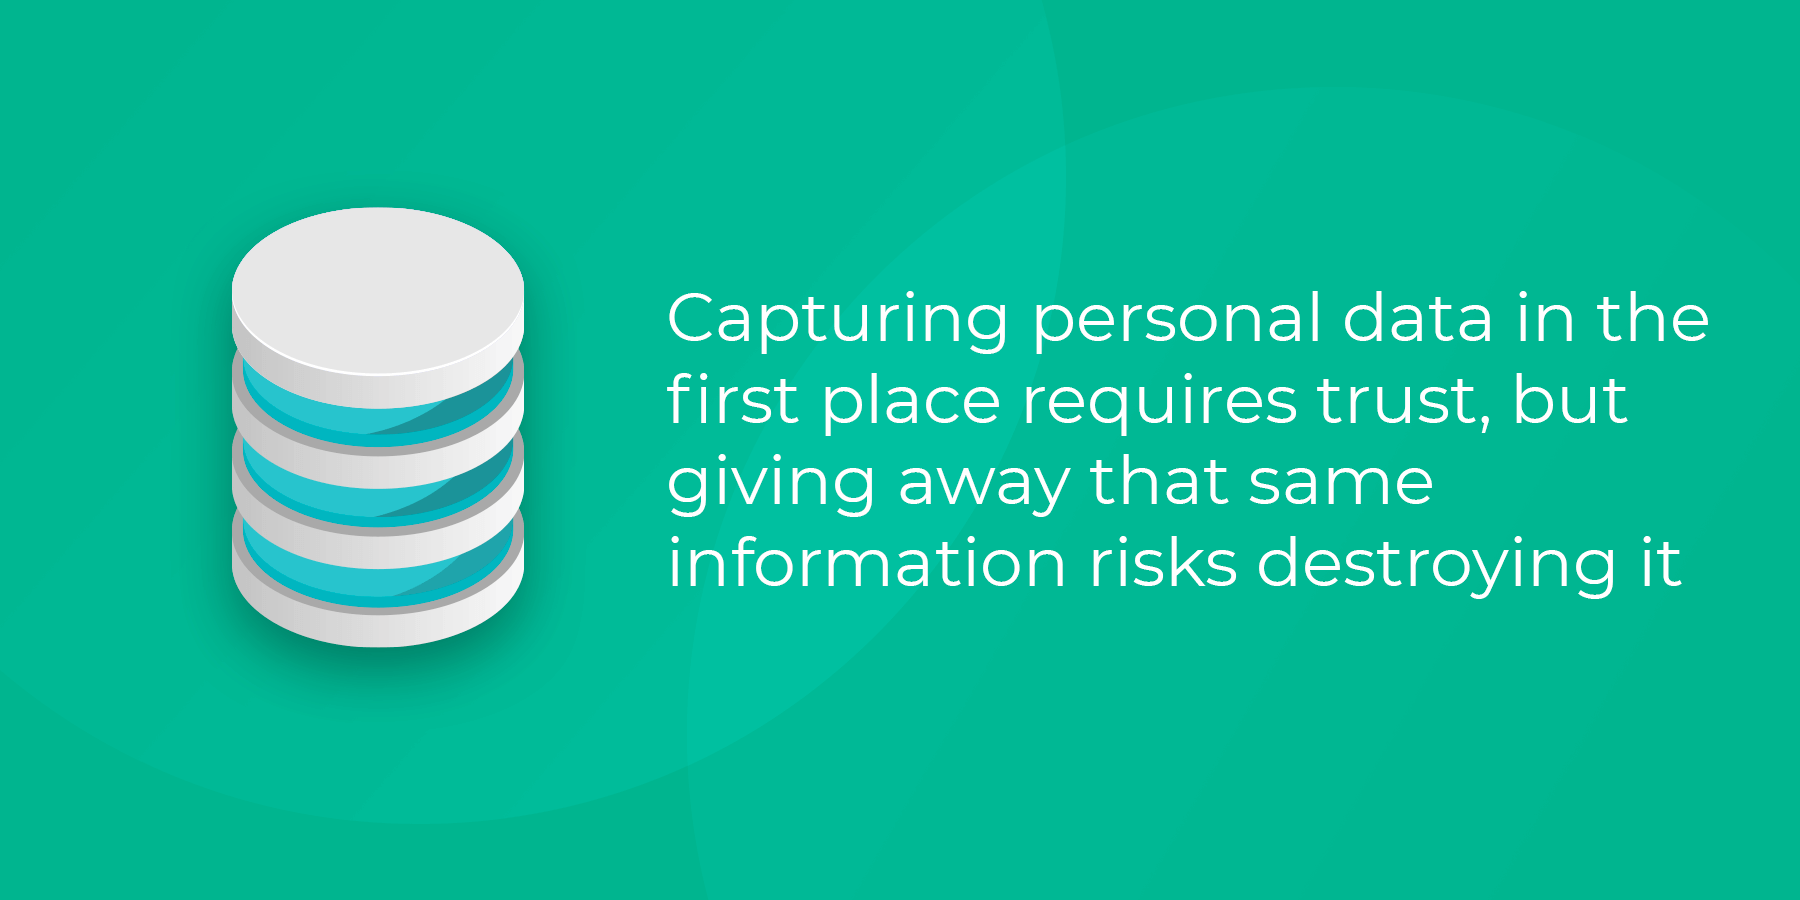 Capturing personal data requires trust but giving it away risks destroying that trust